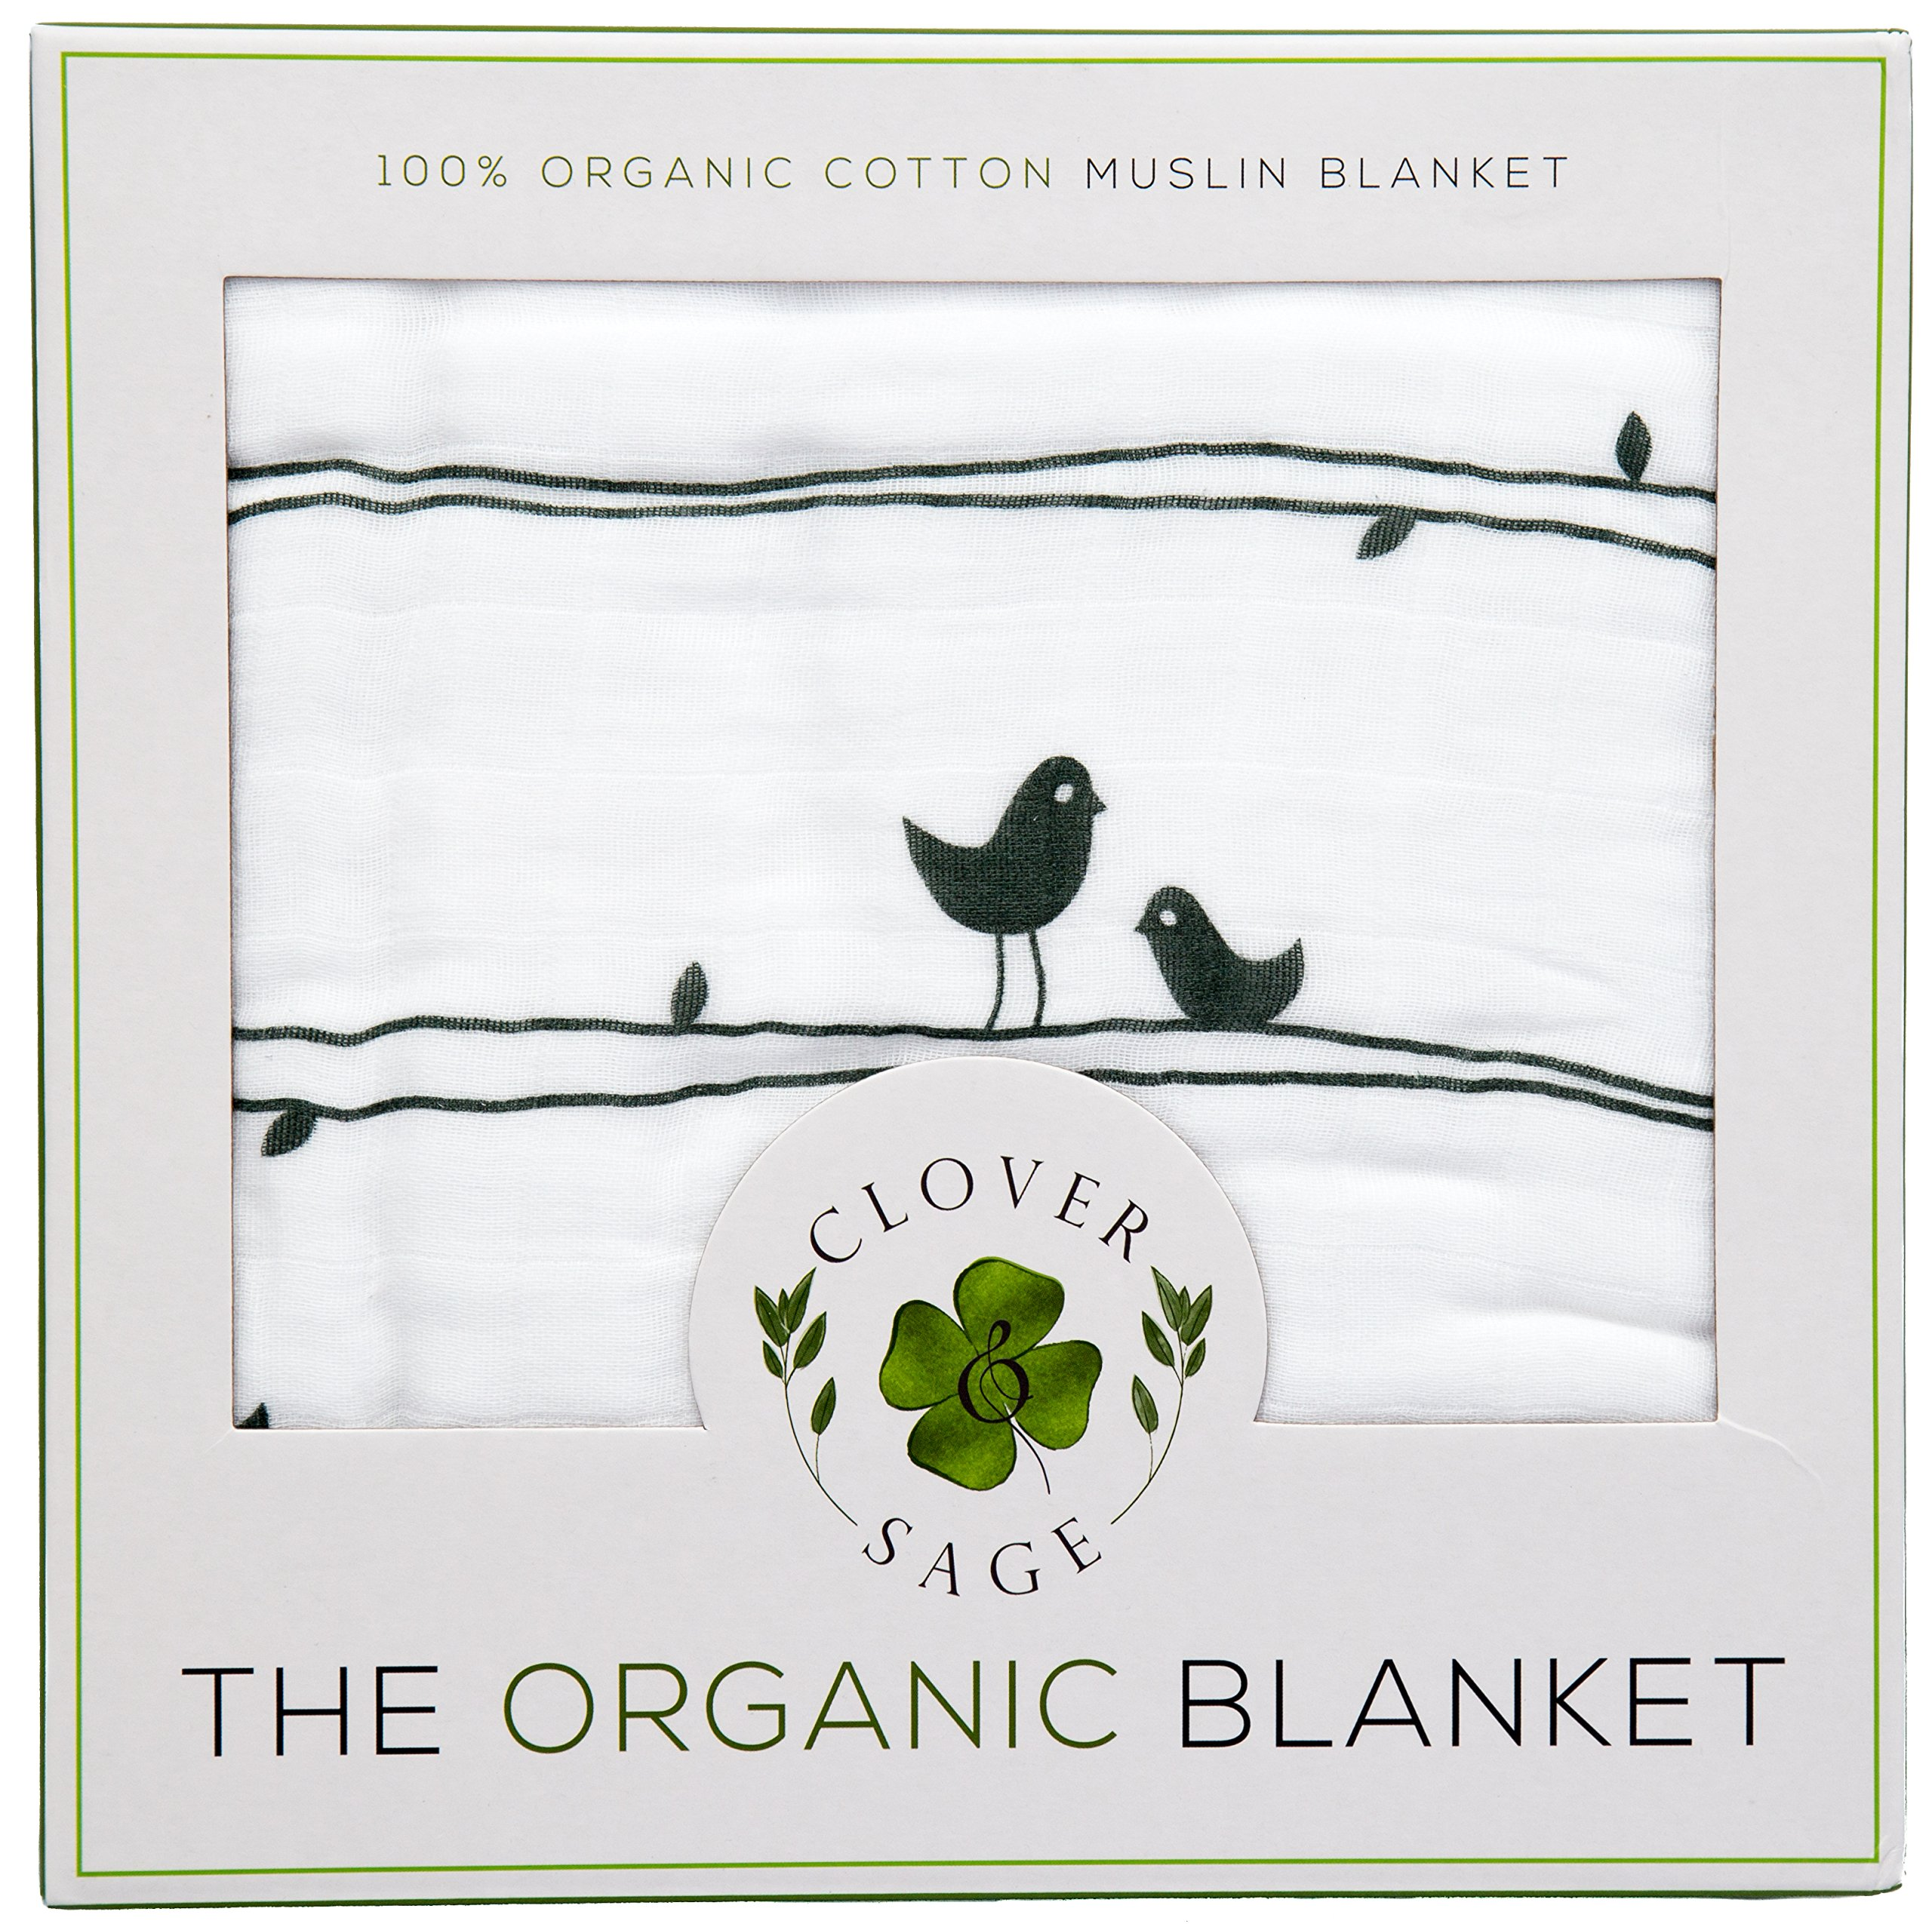 Organic Muslin Baby Toddler Blanket - 100% Hypoallergenic Cotton Bed Blankets - Lucky Birds by Clover & Sage by Clover & Sage